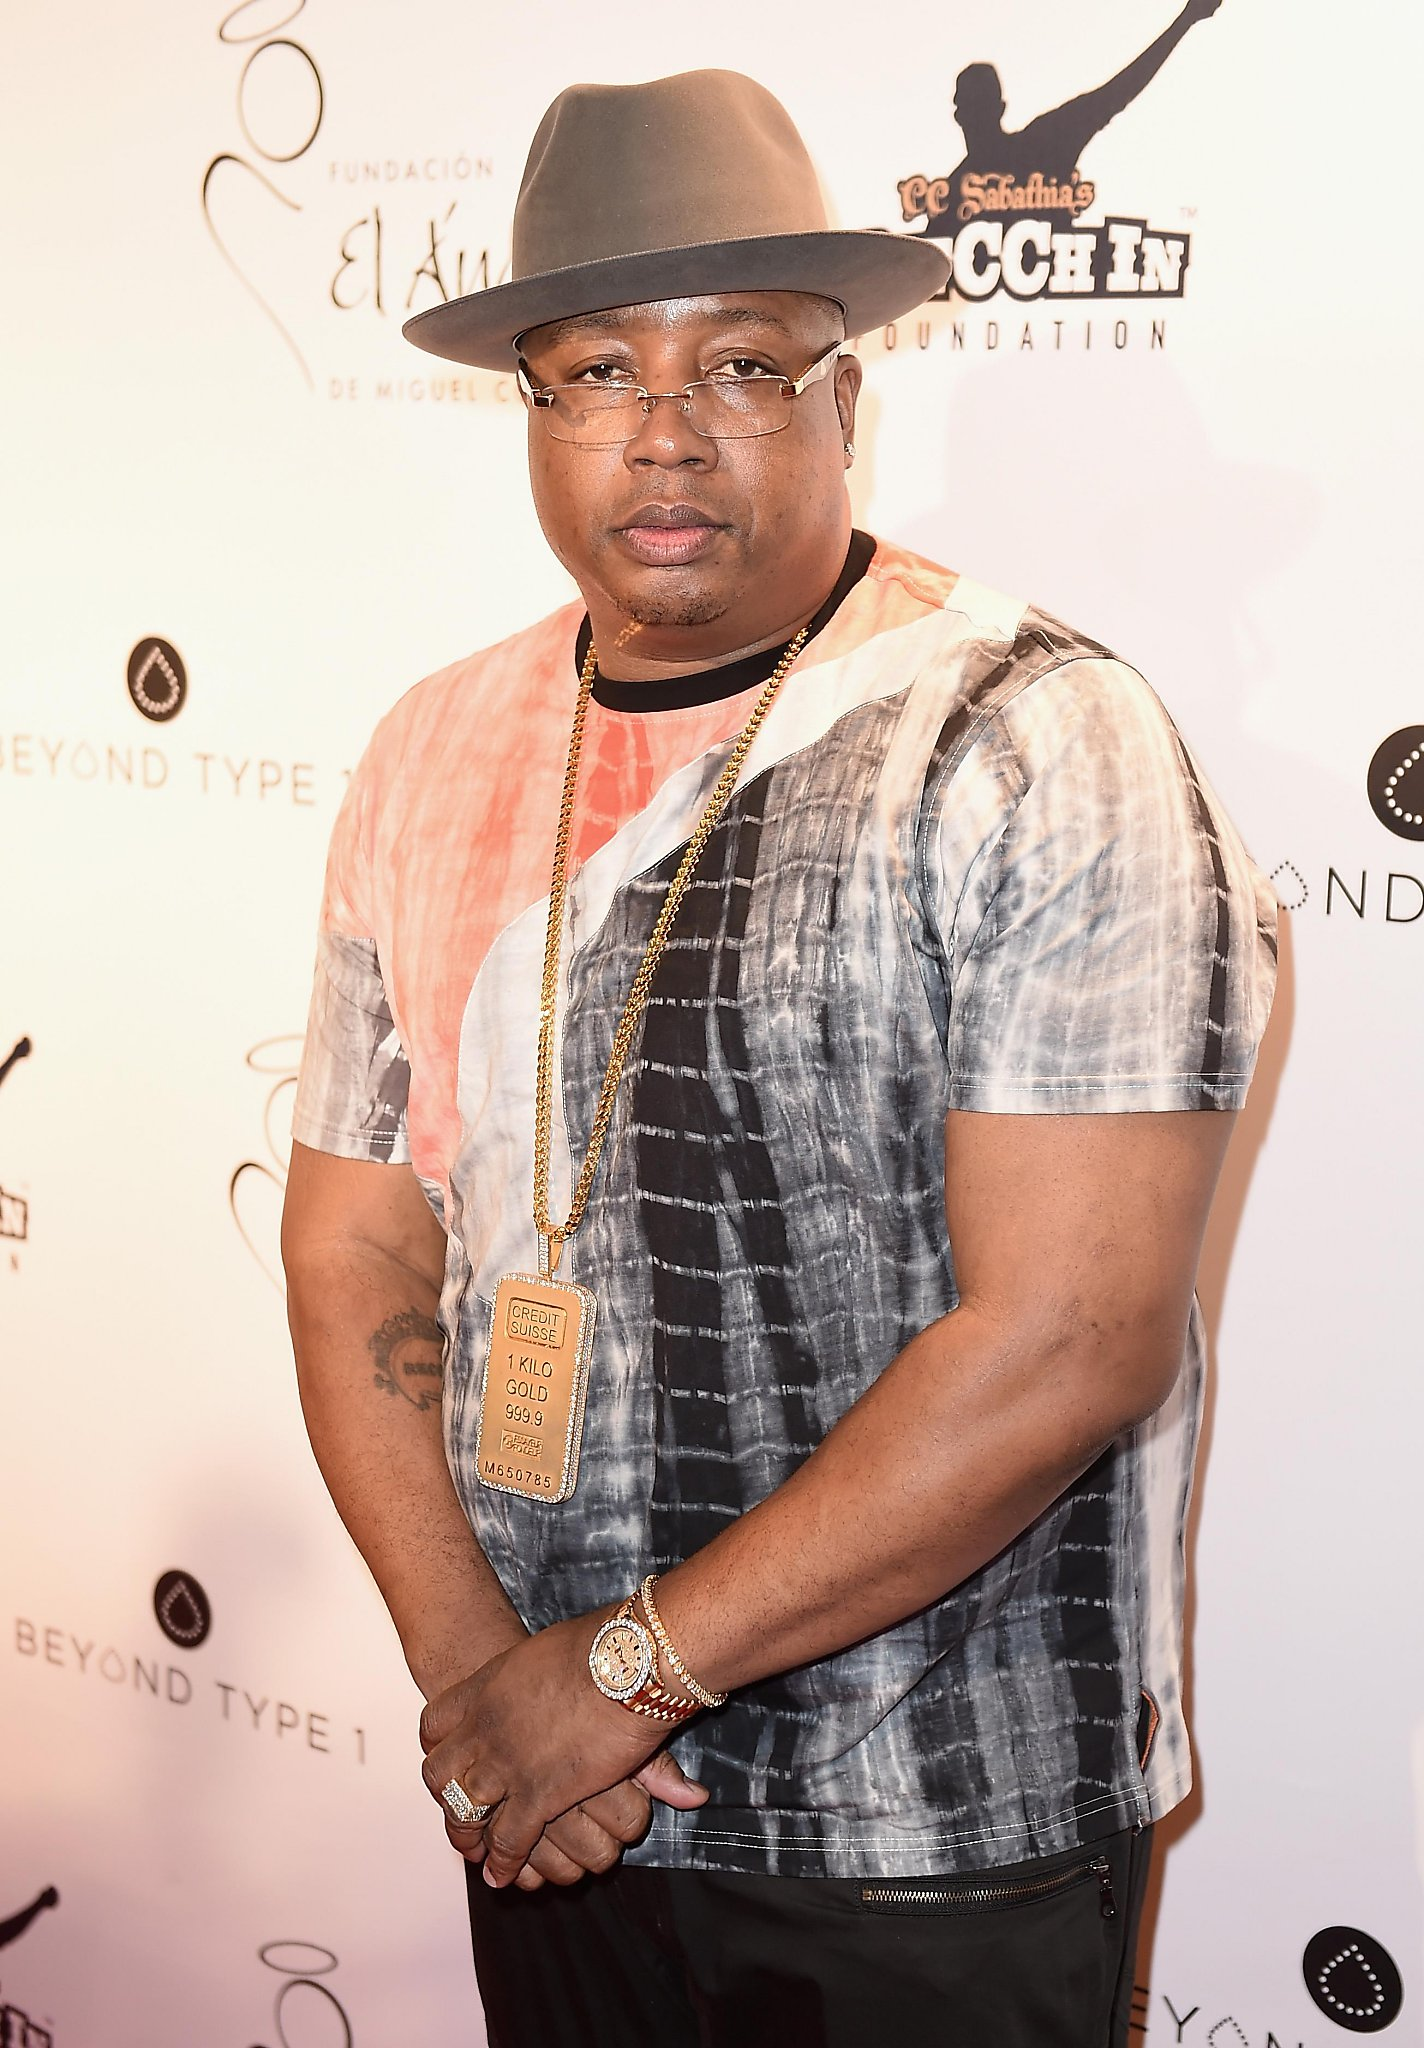 Rapper E-40 to release line of tequila in time for Cinco de